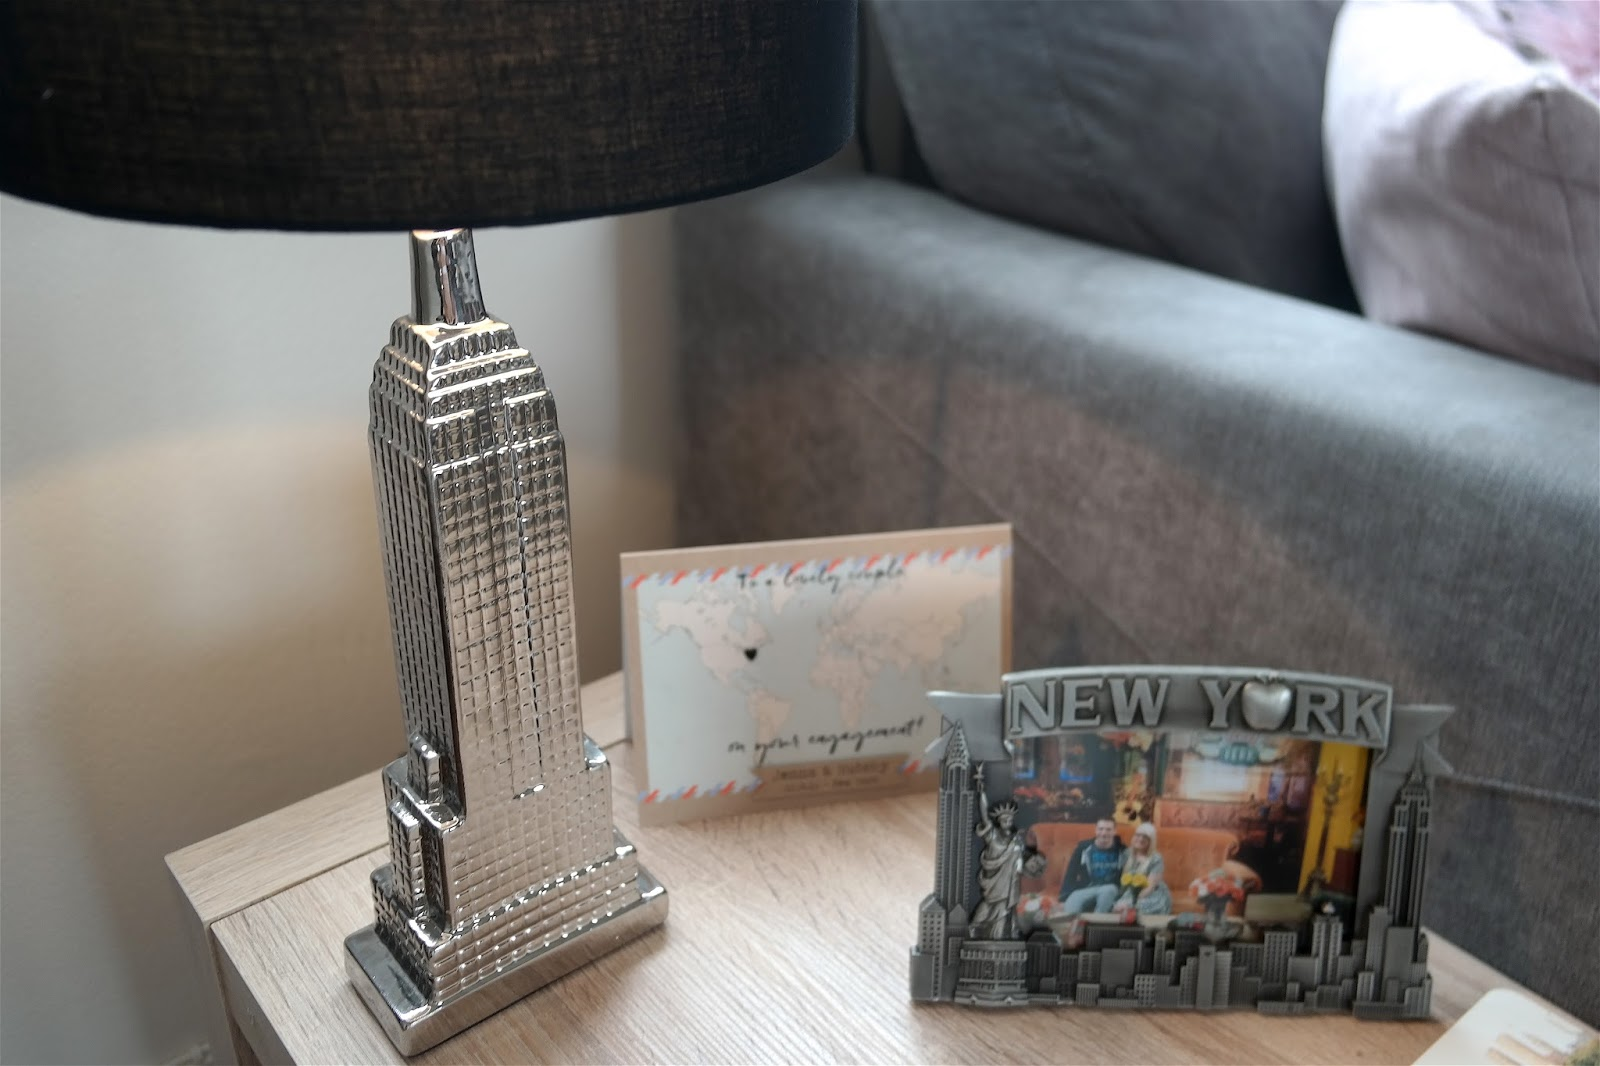 The Iconic New York Building Can Bring Back Instant Memories Of The City,  Whether Itu0027s Of The View From The Top Of The Rock Out To The Building That  ...